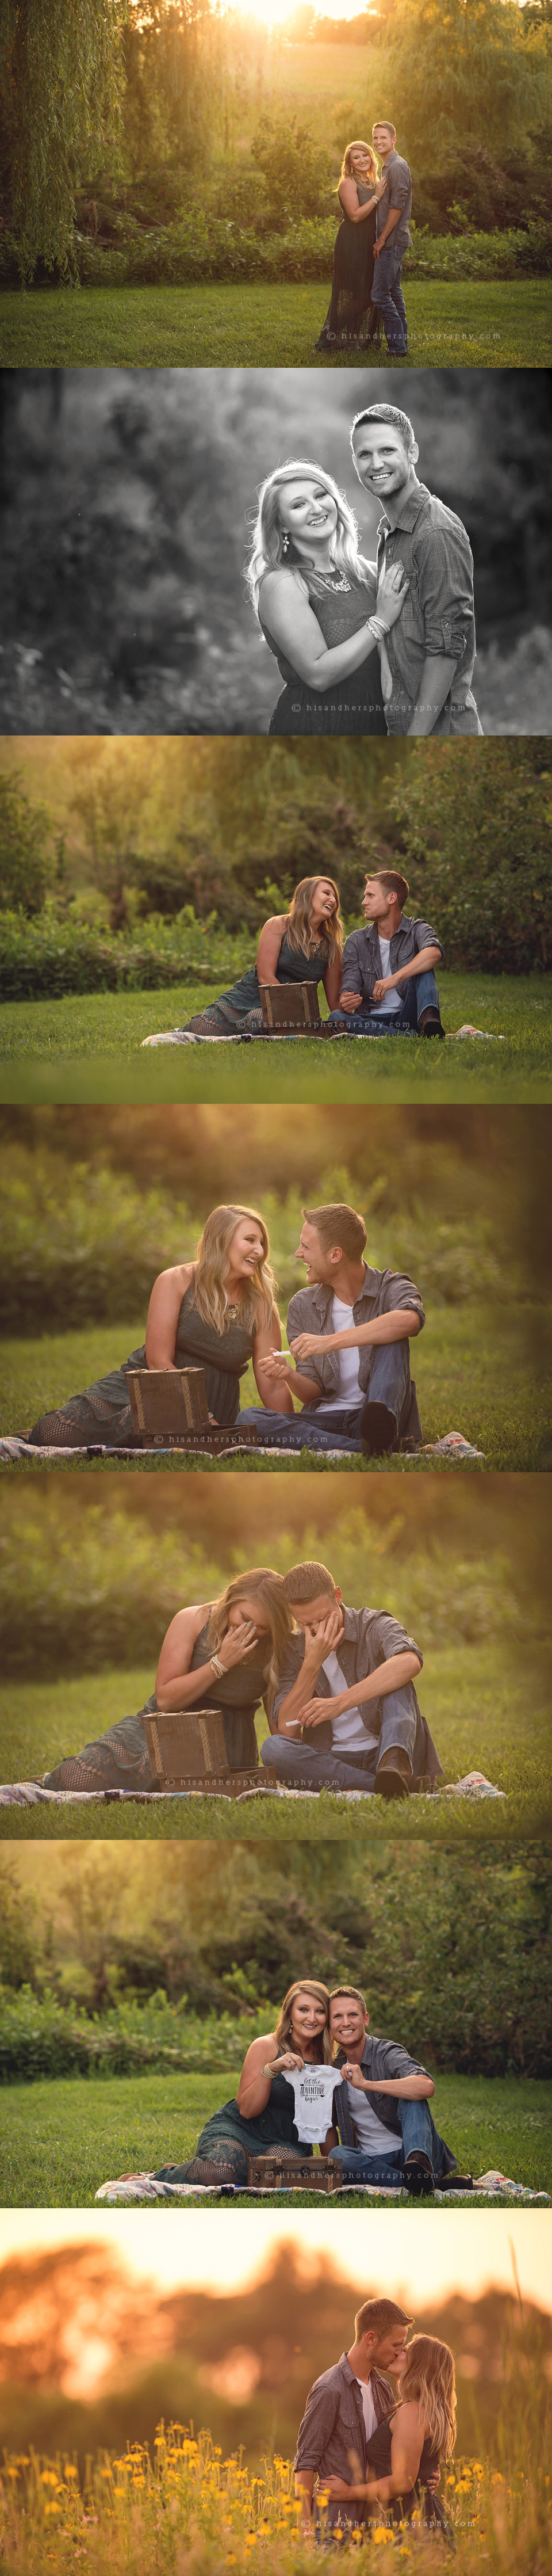 maternity pregnancy reveal secret pregnancy announcement des moines iowa photographer